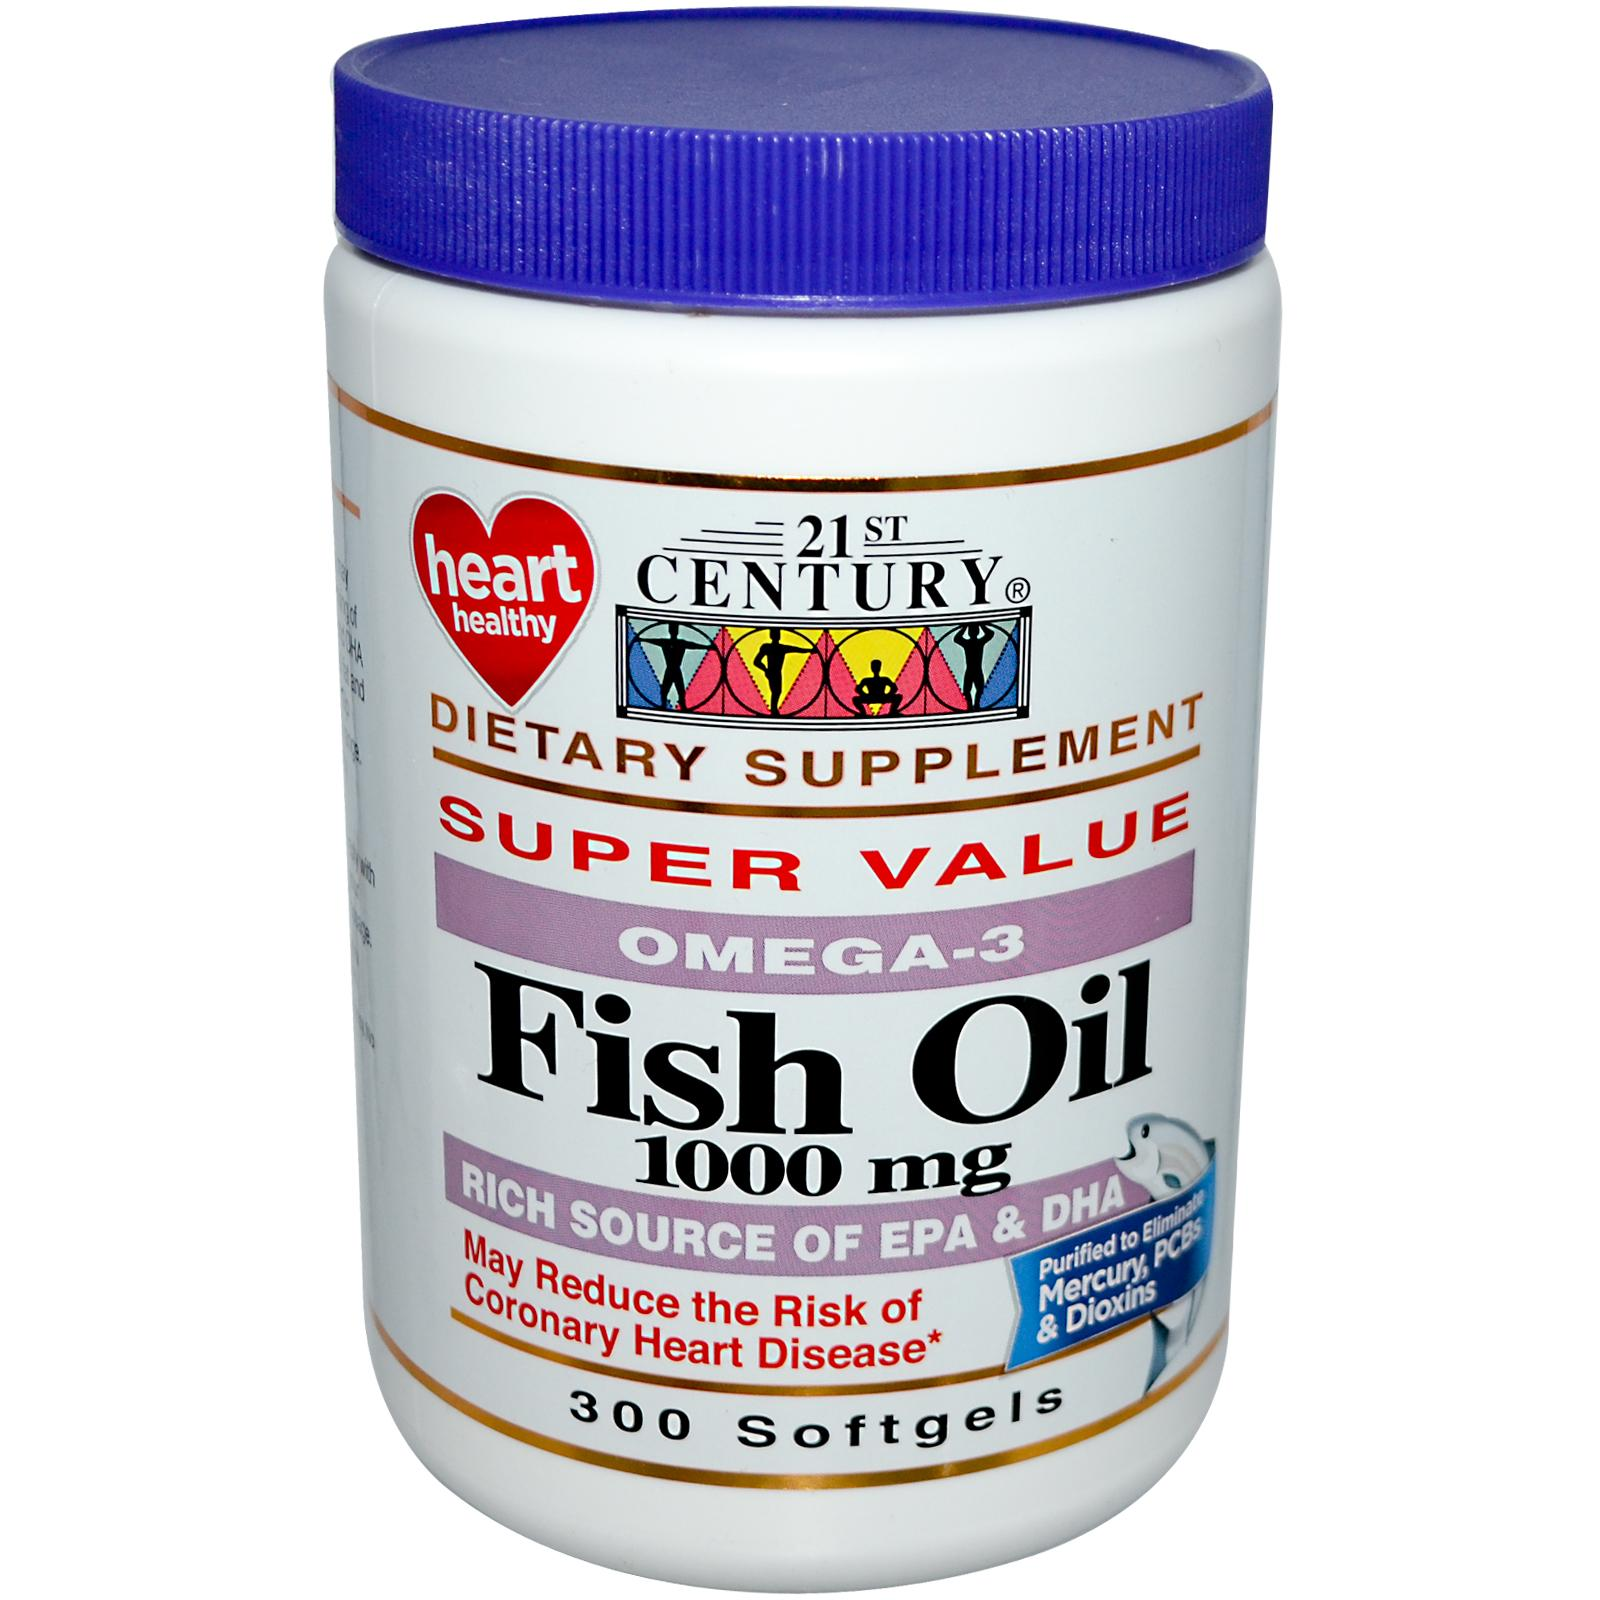 Fish Oil 1000 mg - Omega-3 / 300 Softgels (4mua HVI-008)